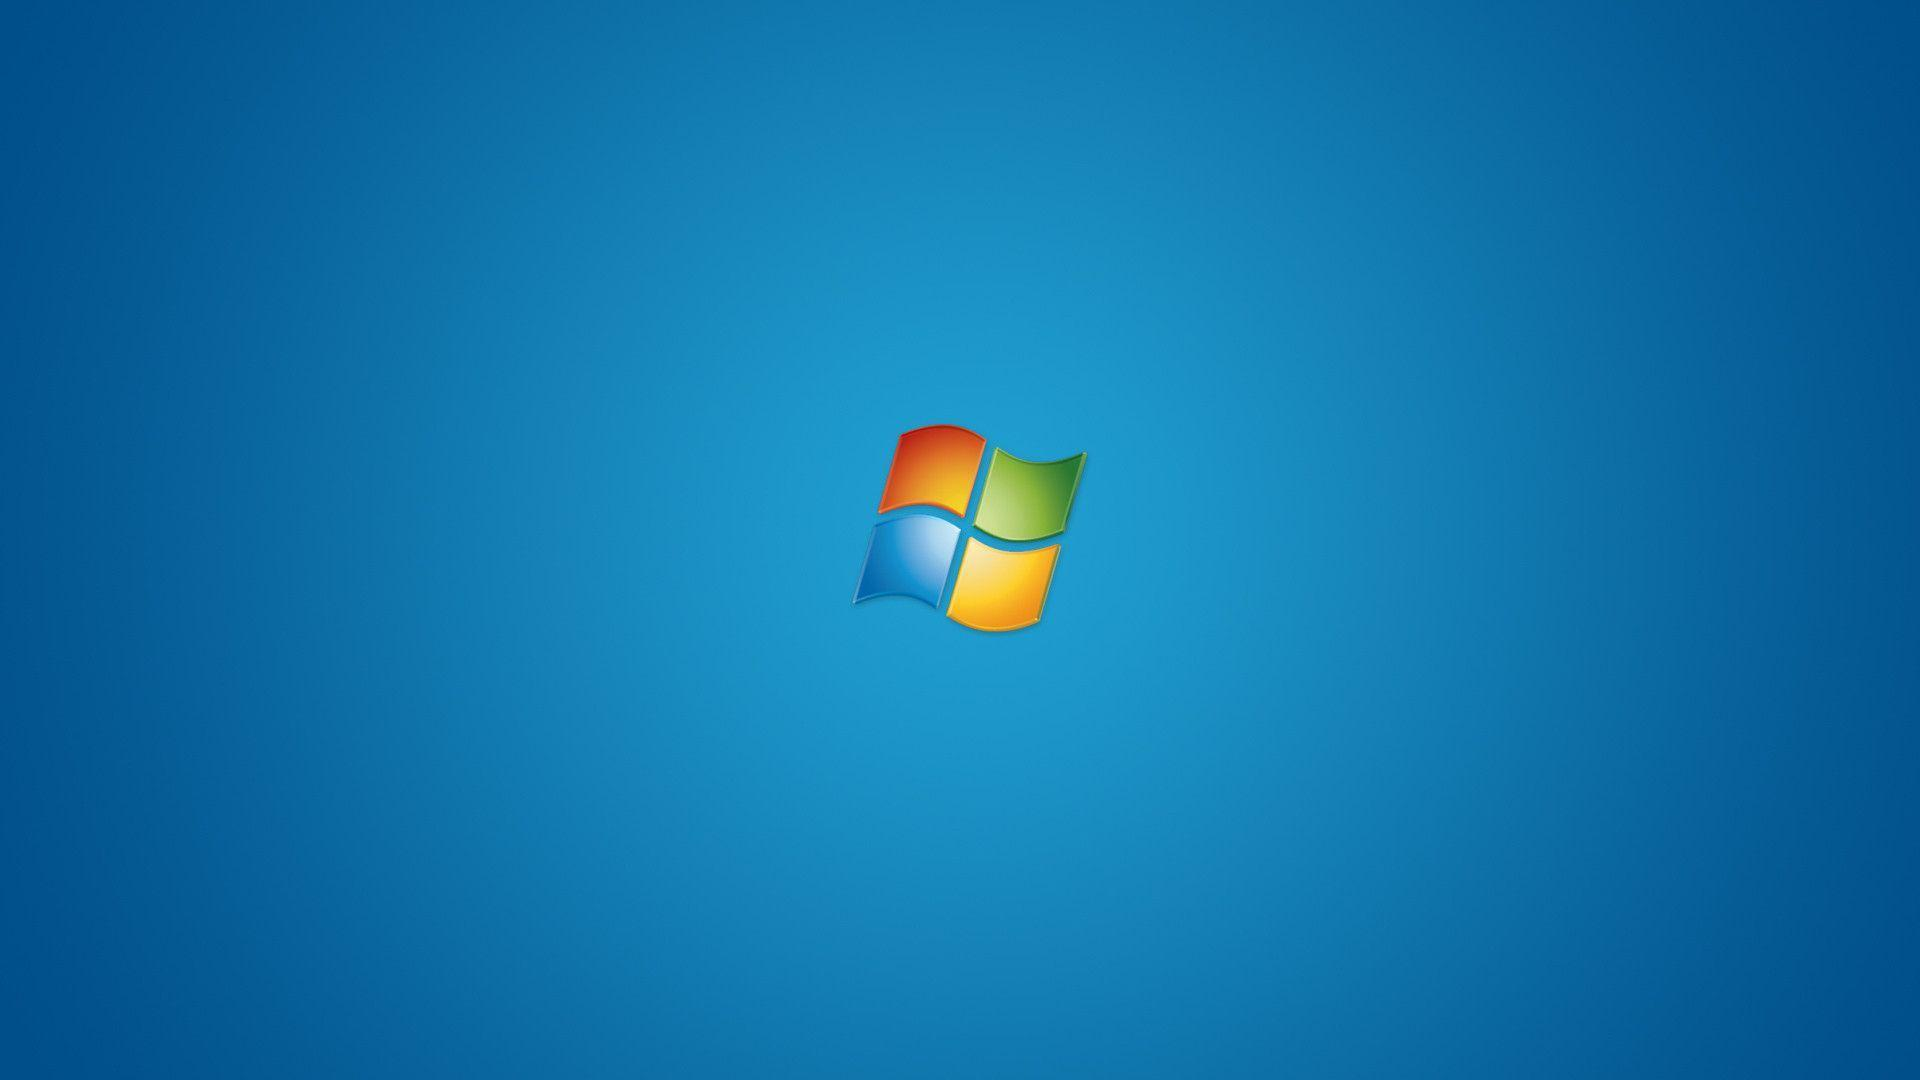 free xp wallpapers download - photo #33